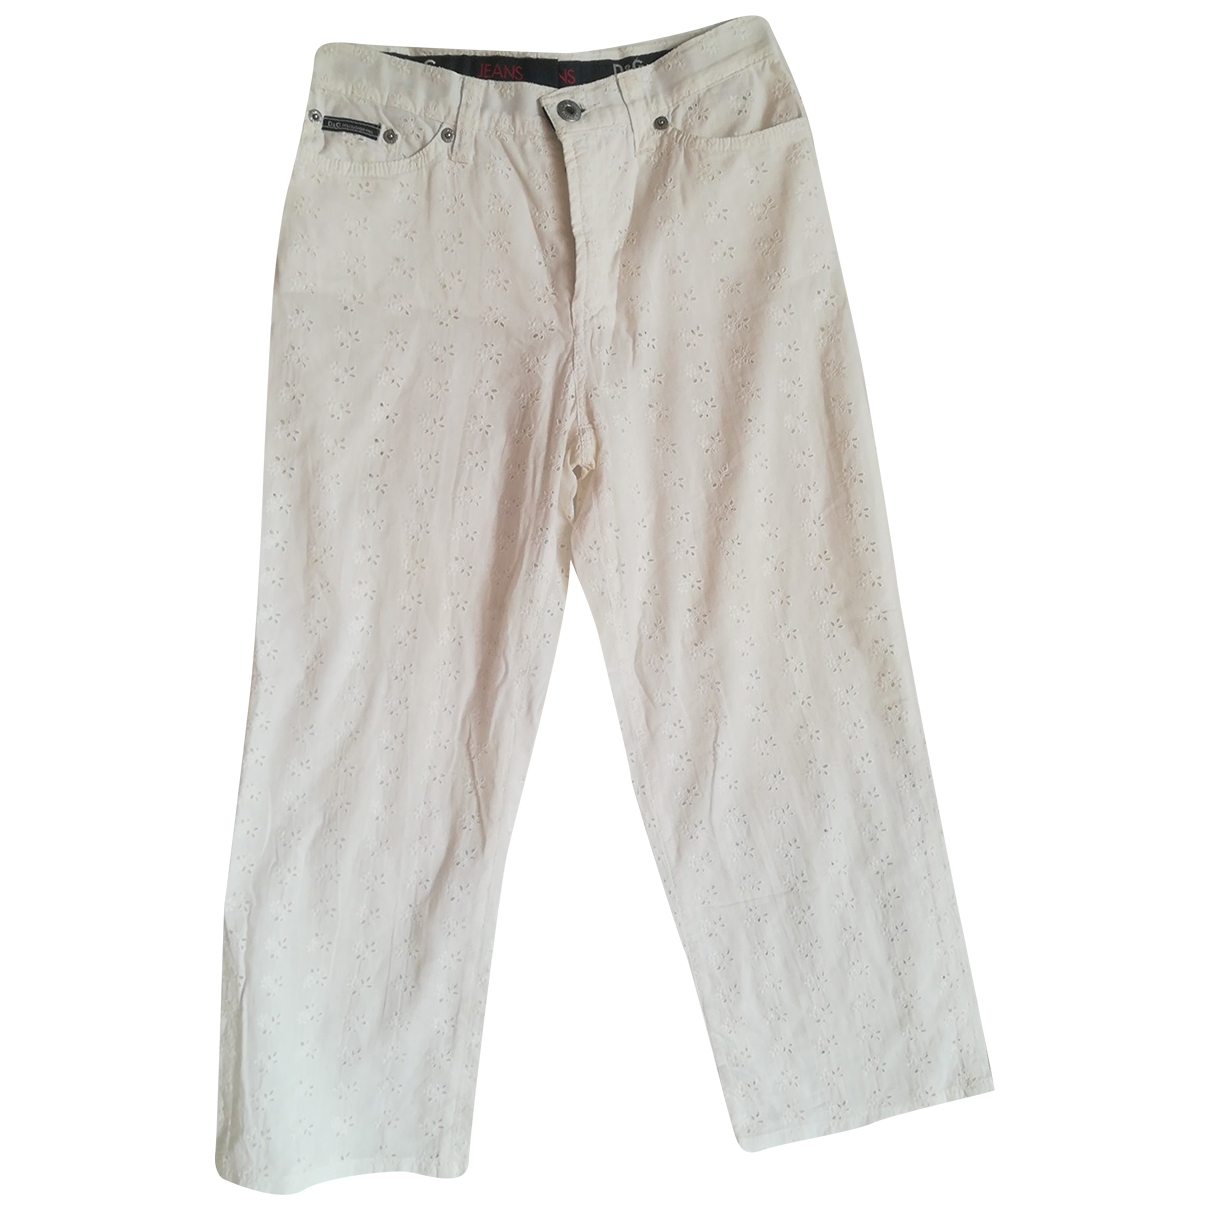 D&g \N White Cotton Trousers for Women 42 IT